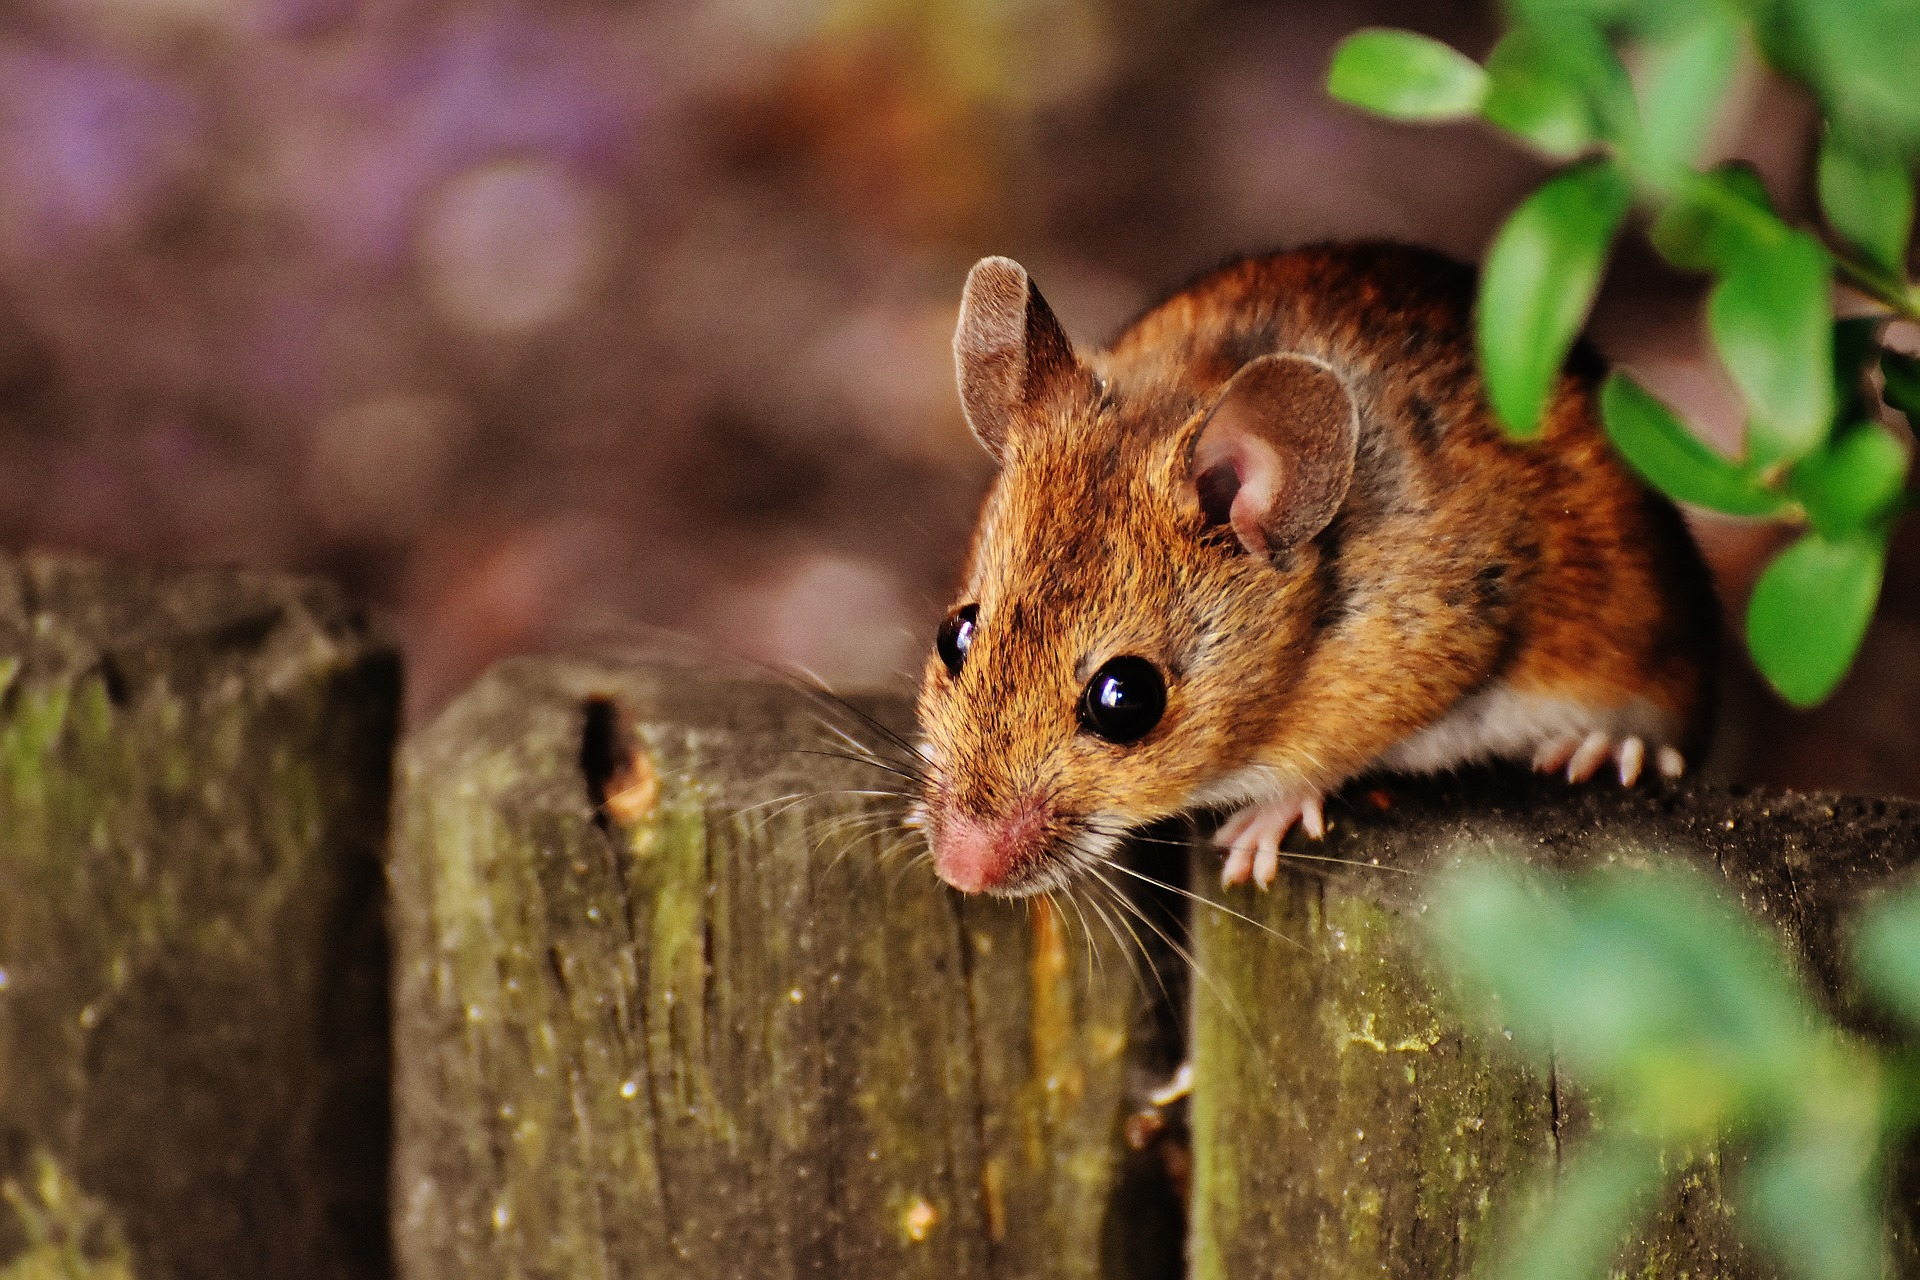 A country mouse on rhe outside, and proud town mouse on the outside Pictre: PIXABAY